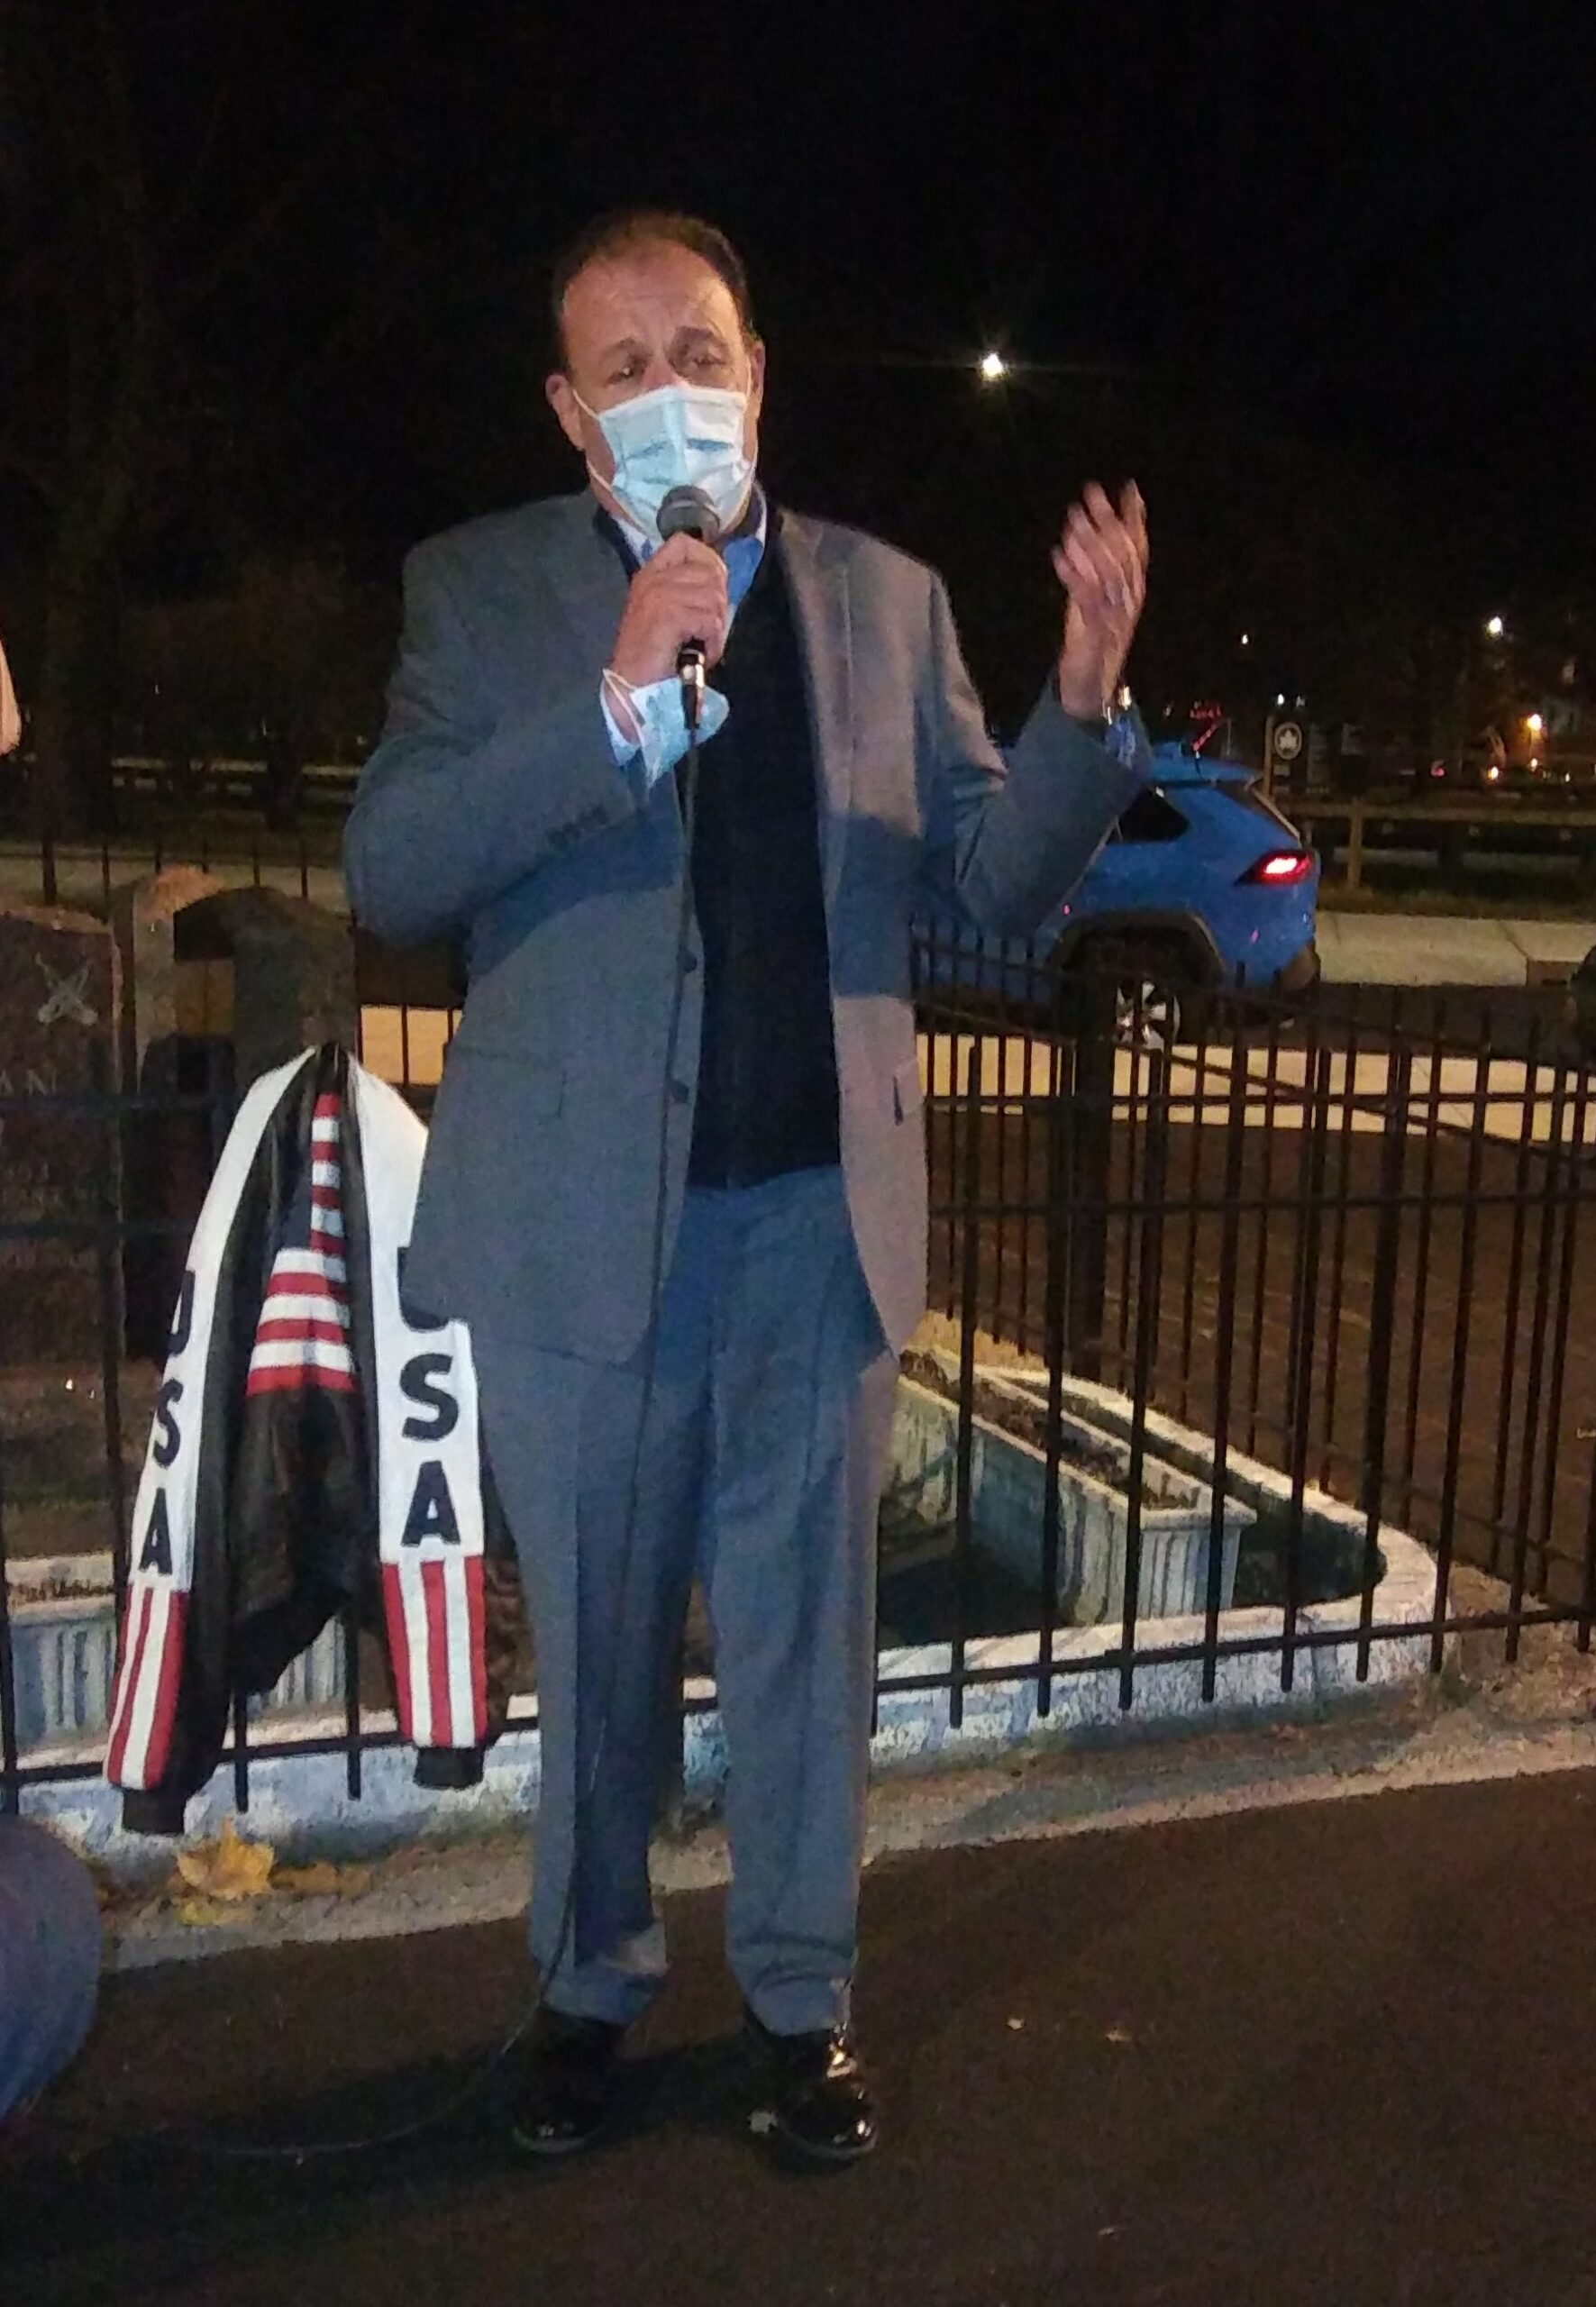 Councilman Mark Gjonaj speaking at the rally about how there was only two day notice to store owners before the indoor dining ban went into effect.